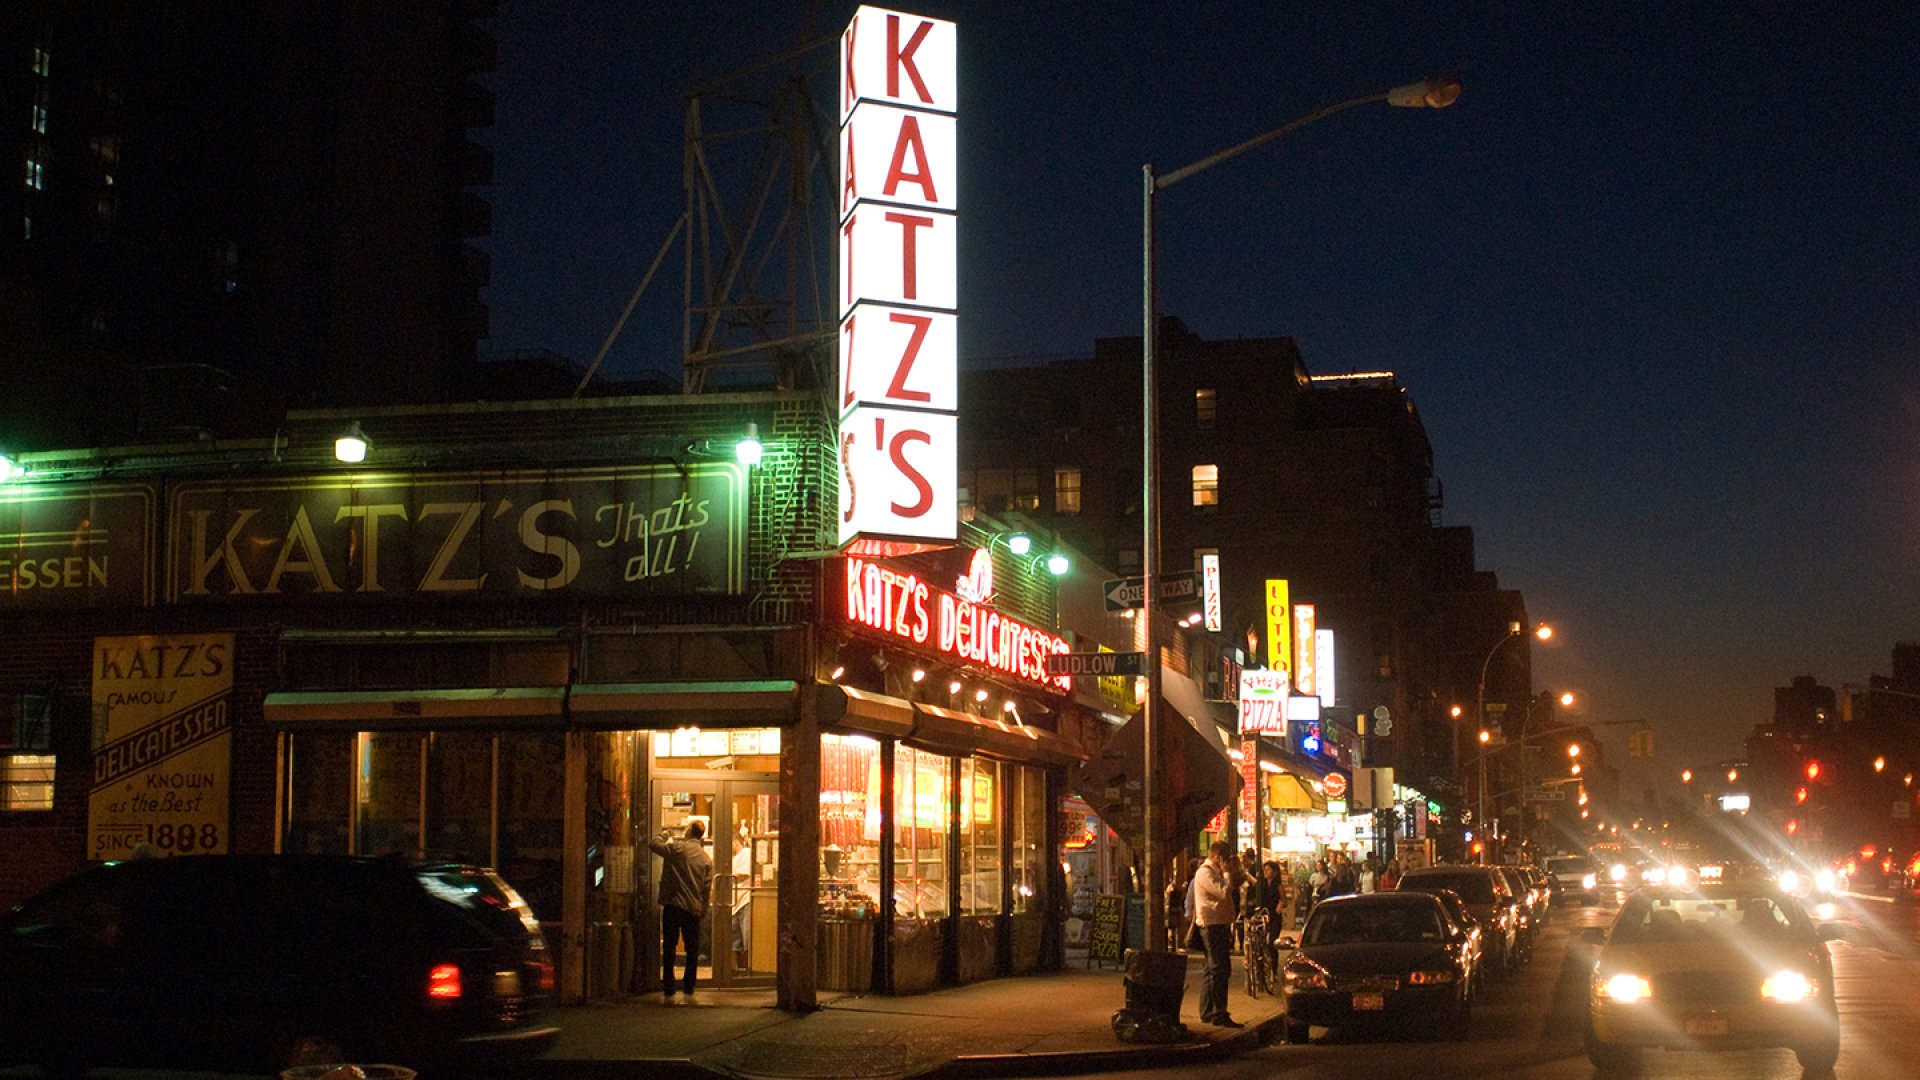 How Katz's Deli Stays in Business Against the Odds